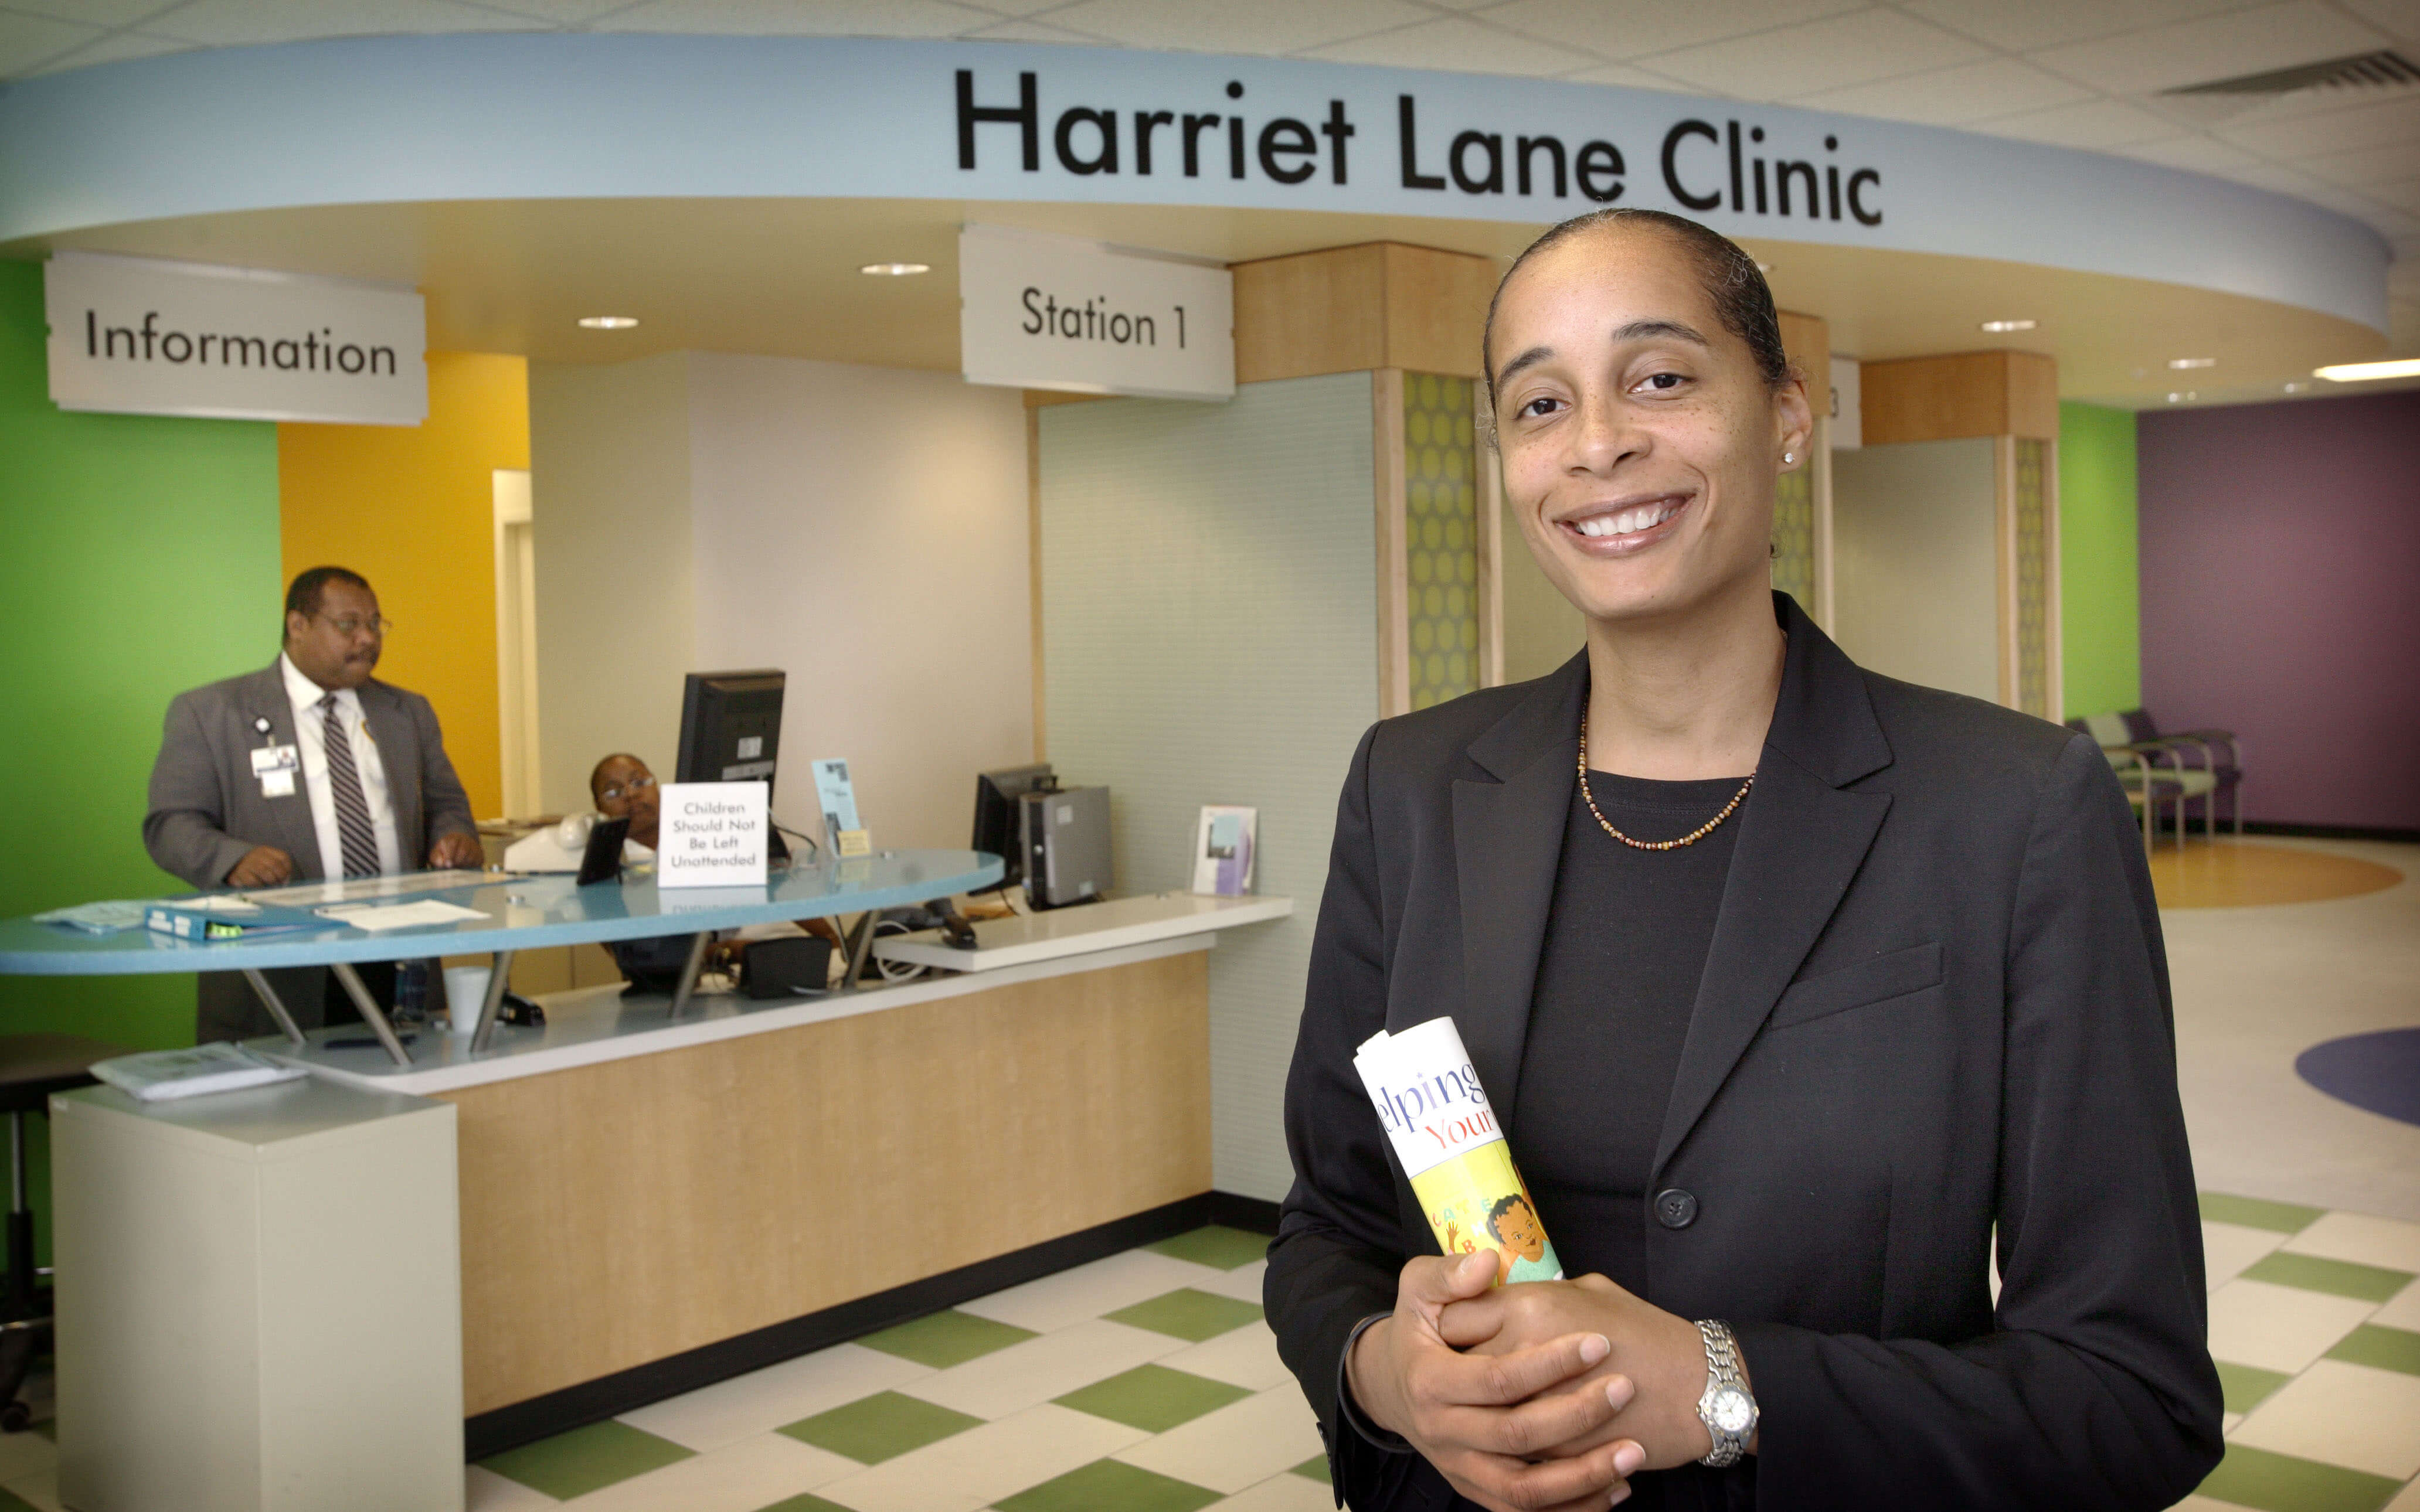 The Harriet Lane Clinic